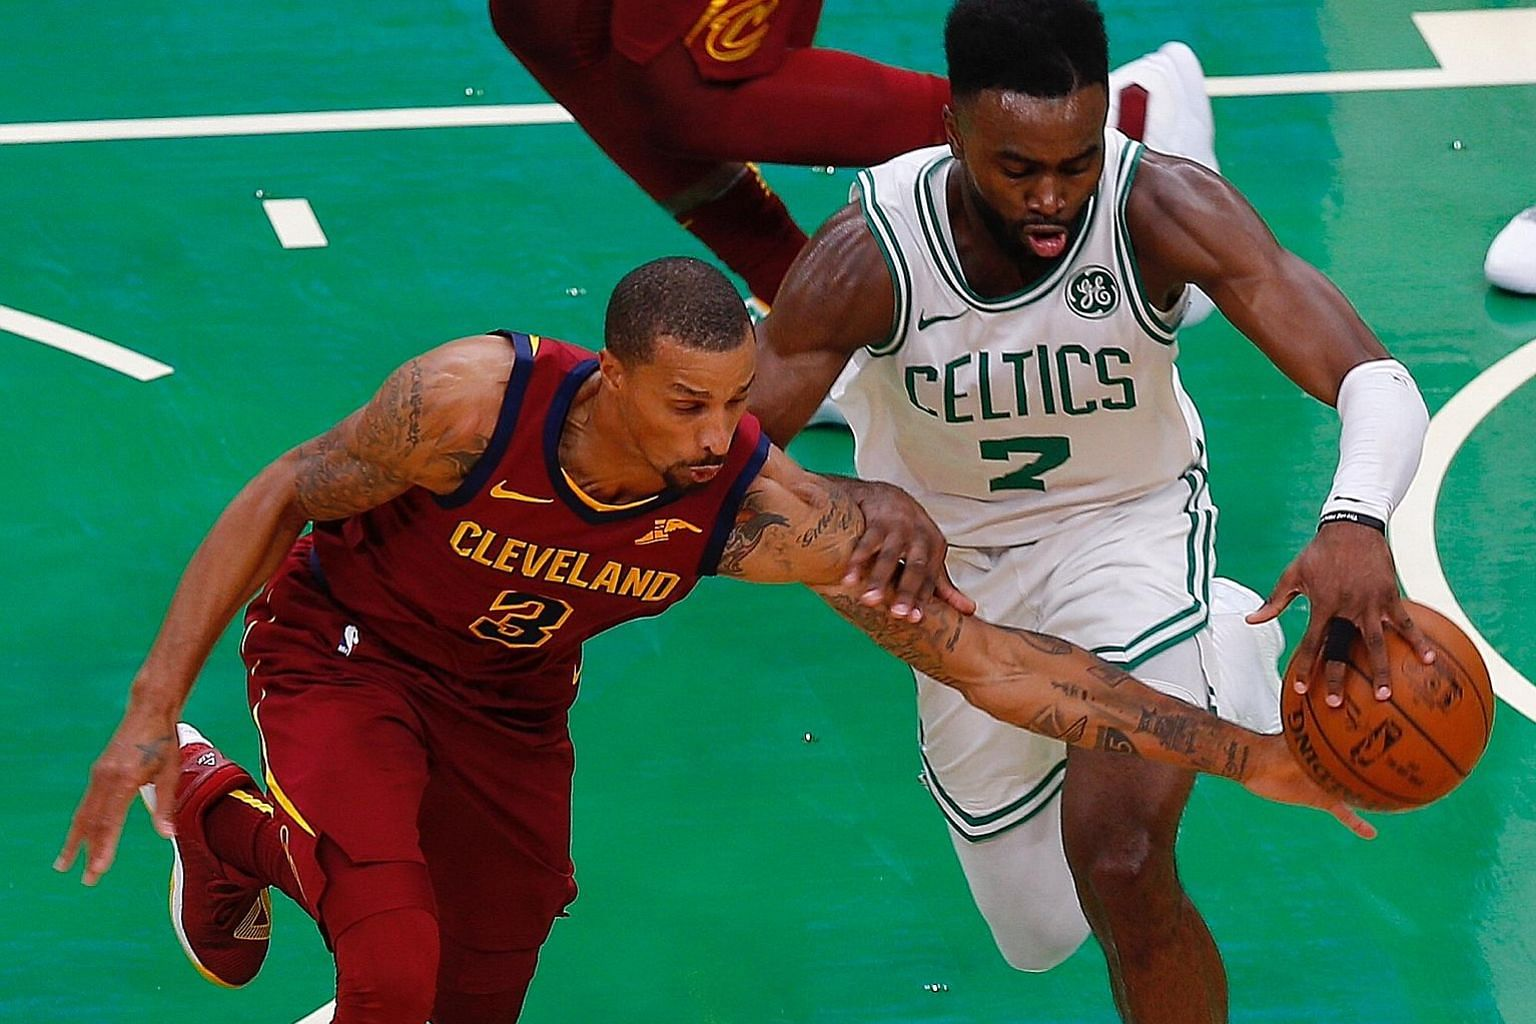 Celtics guard Jaylen Brown and Cavaliers guard George Hill tussling for the ball in their pre-season game on Oct 2. The teams will be vying for supremacy in the Eastern Conference again but Boston have a clear edge after the departure of LeBron James